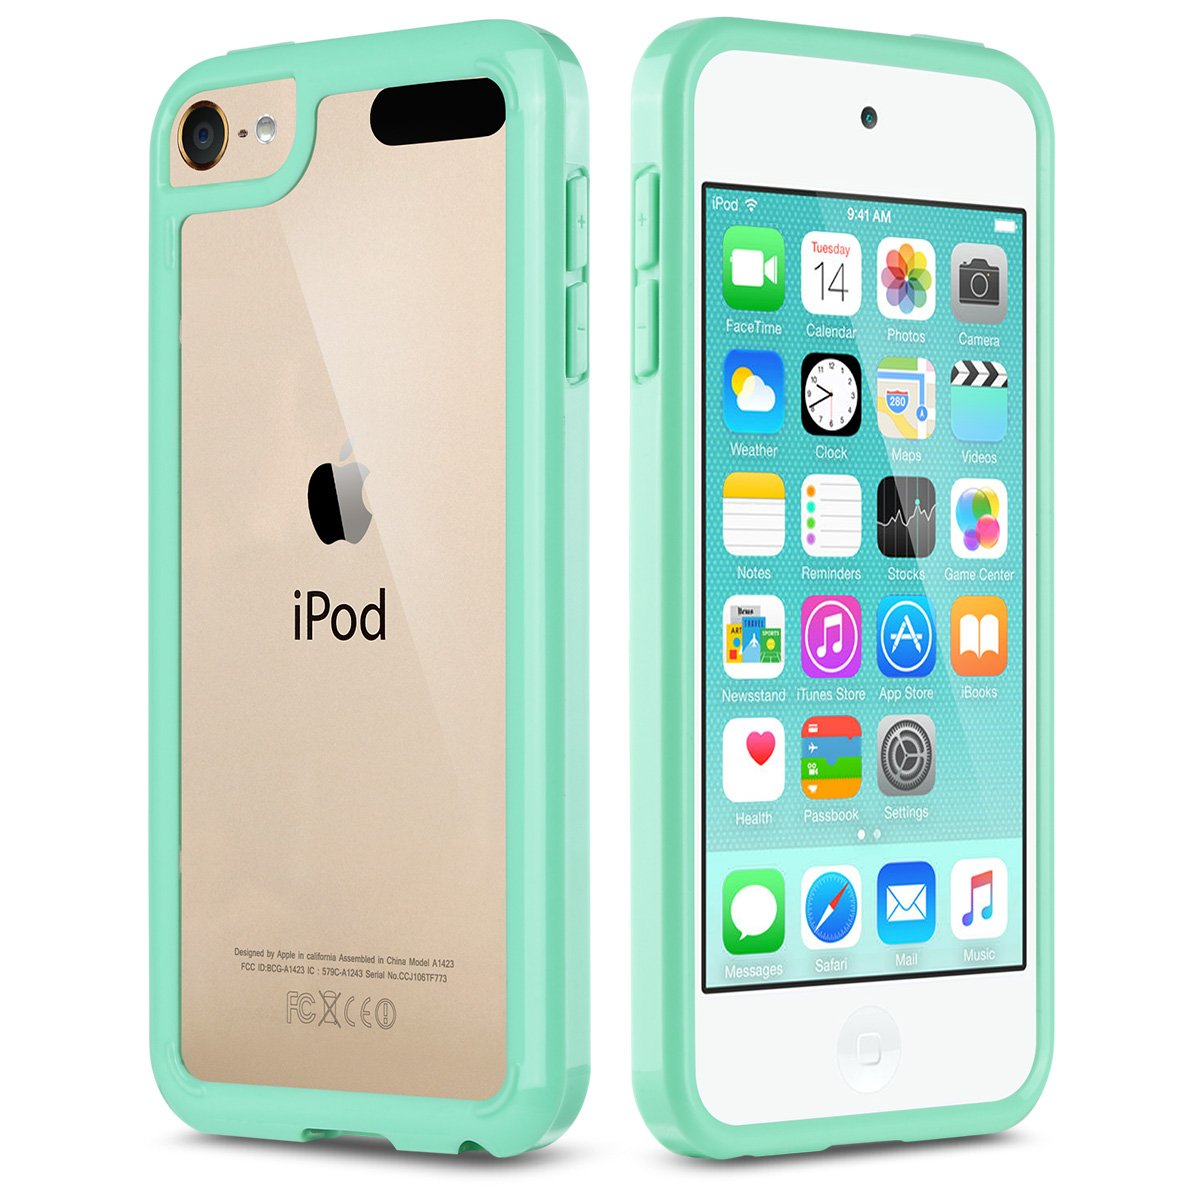 iPod Touch 5 Case, iPod 6 Case, ULAK [CLEAR SLIM] Soft TPU Bumper PC Back Hybrid Case Cover for iPod Touch 5 & 6 6th Gen, Mint Green